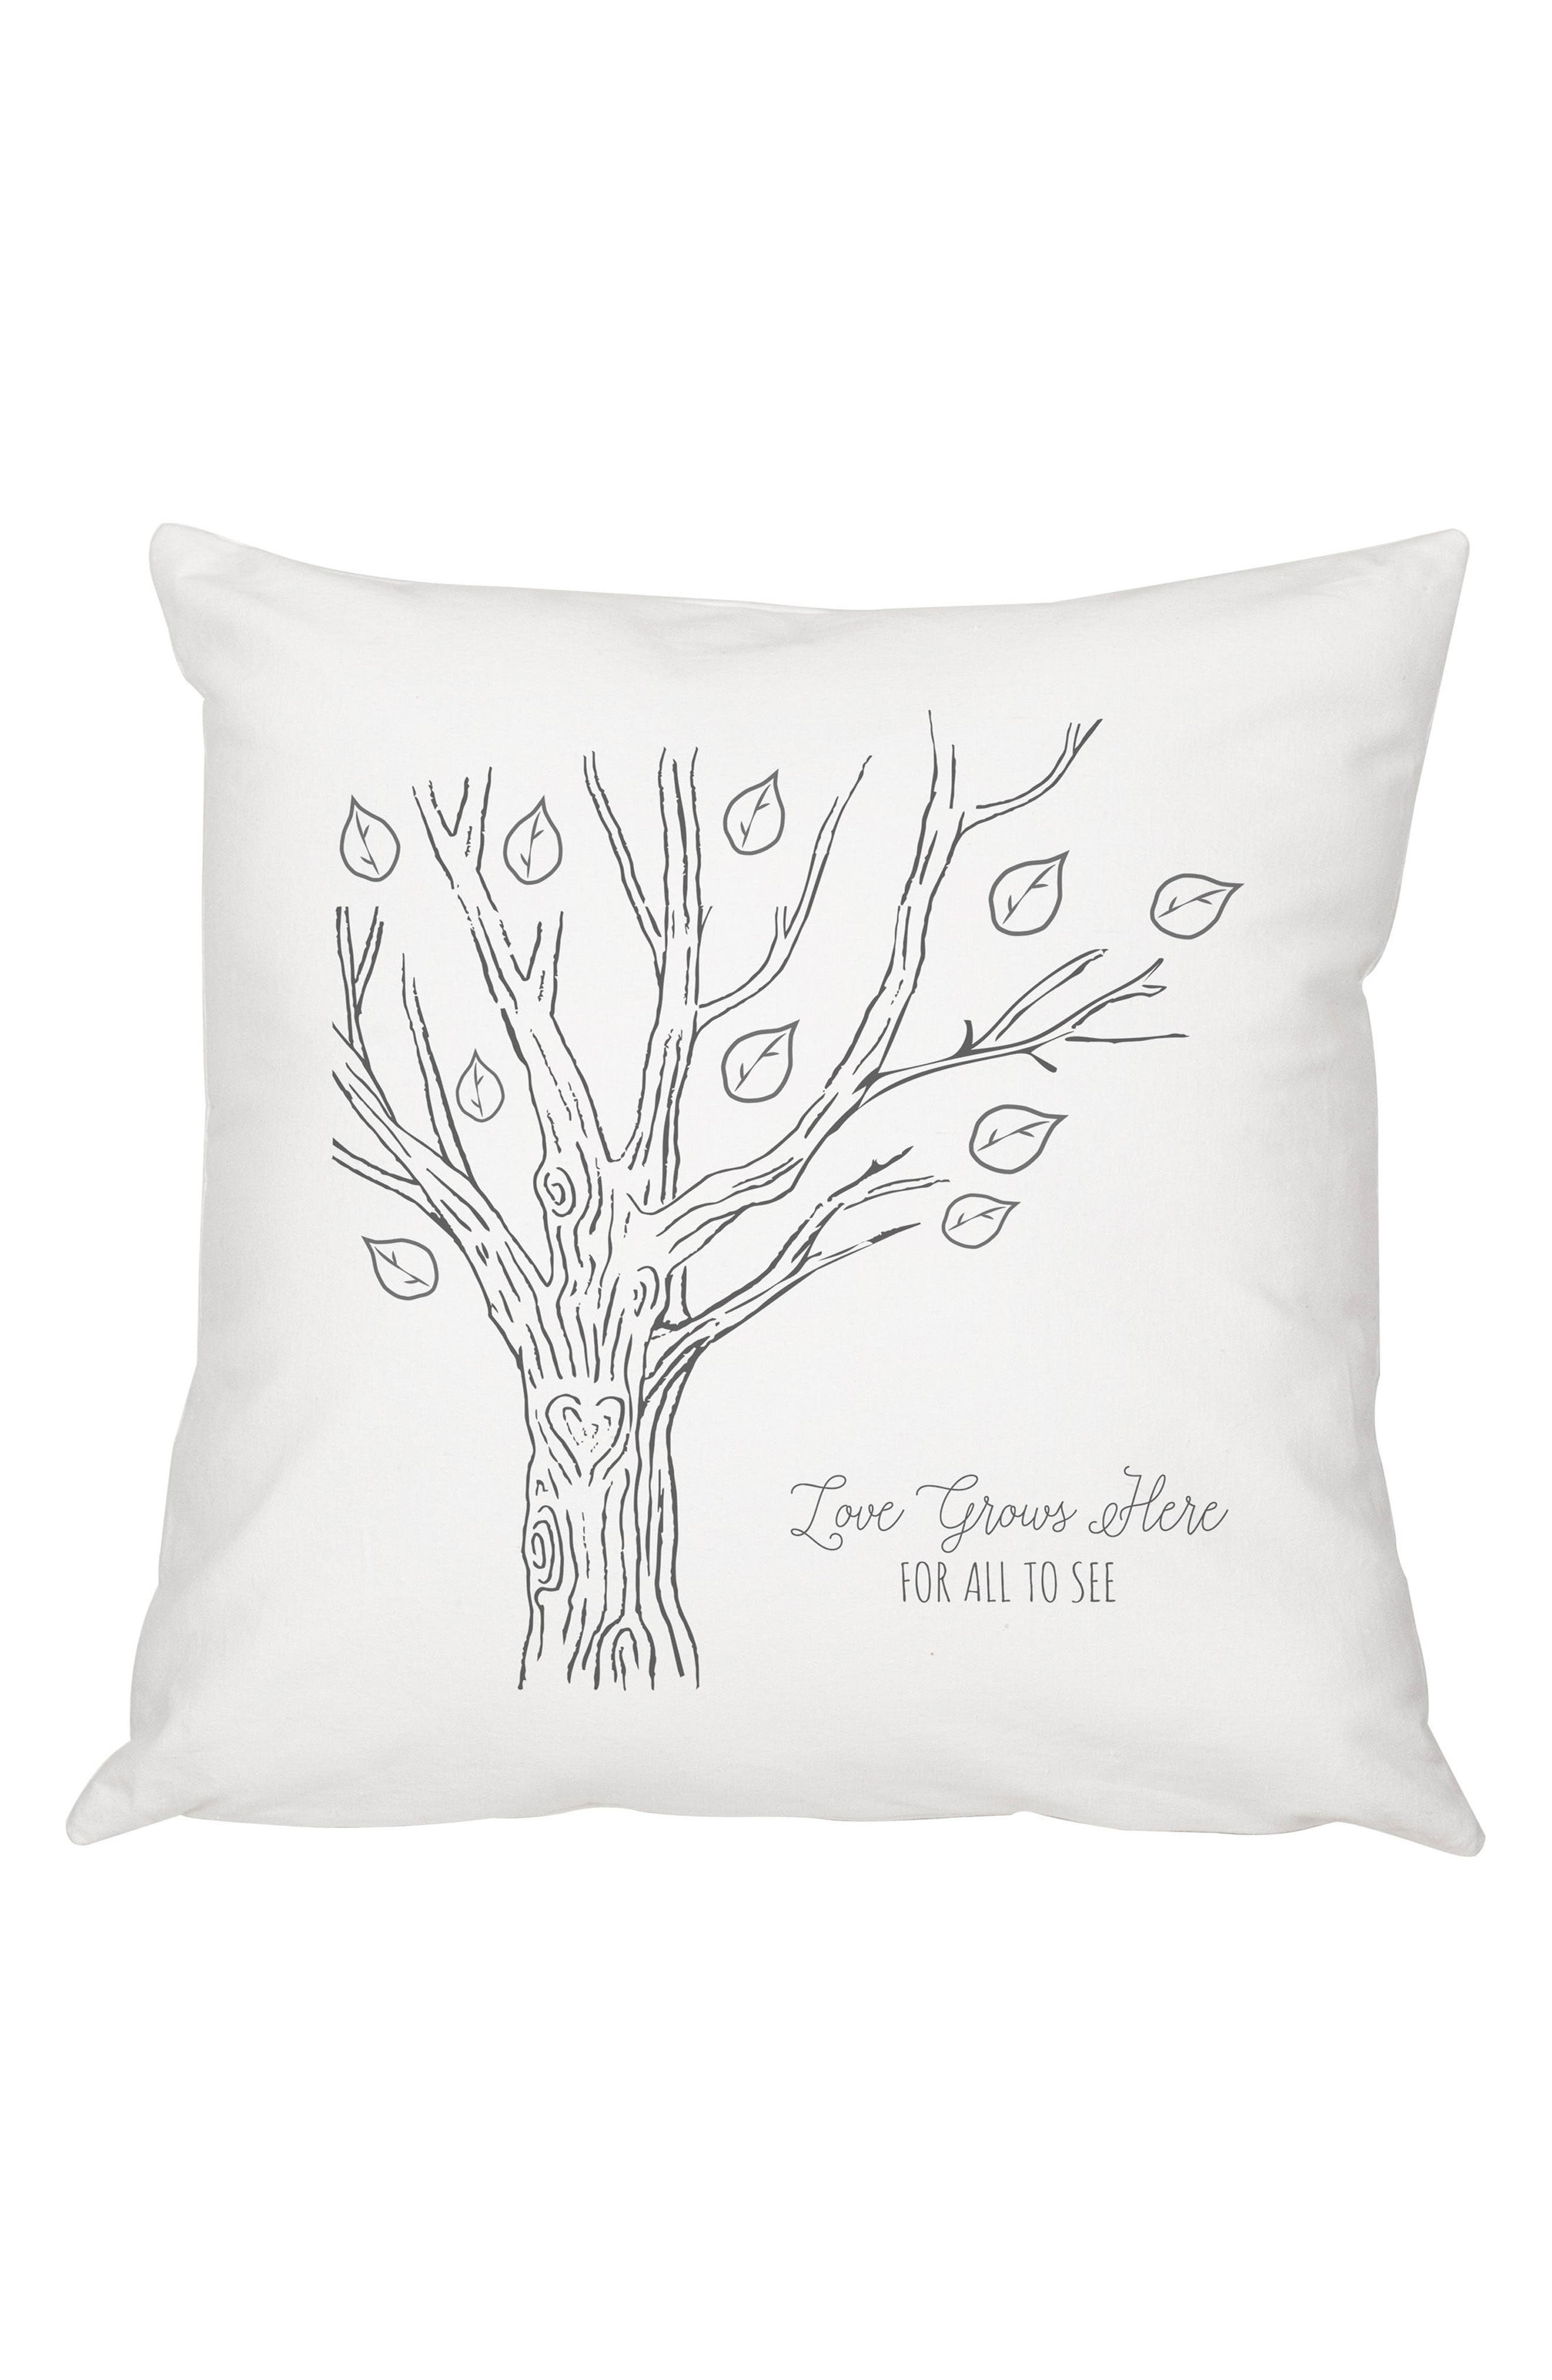 Family Tree Accent Pillow,                         Main,                         color, 001